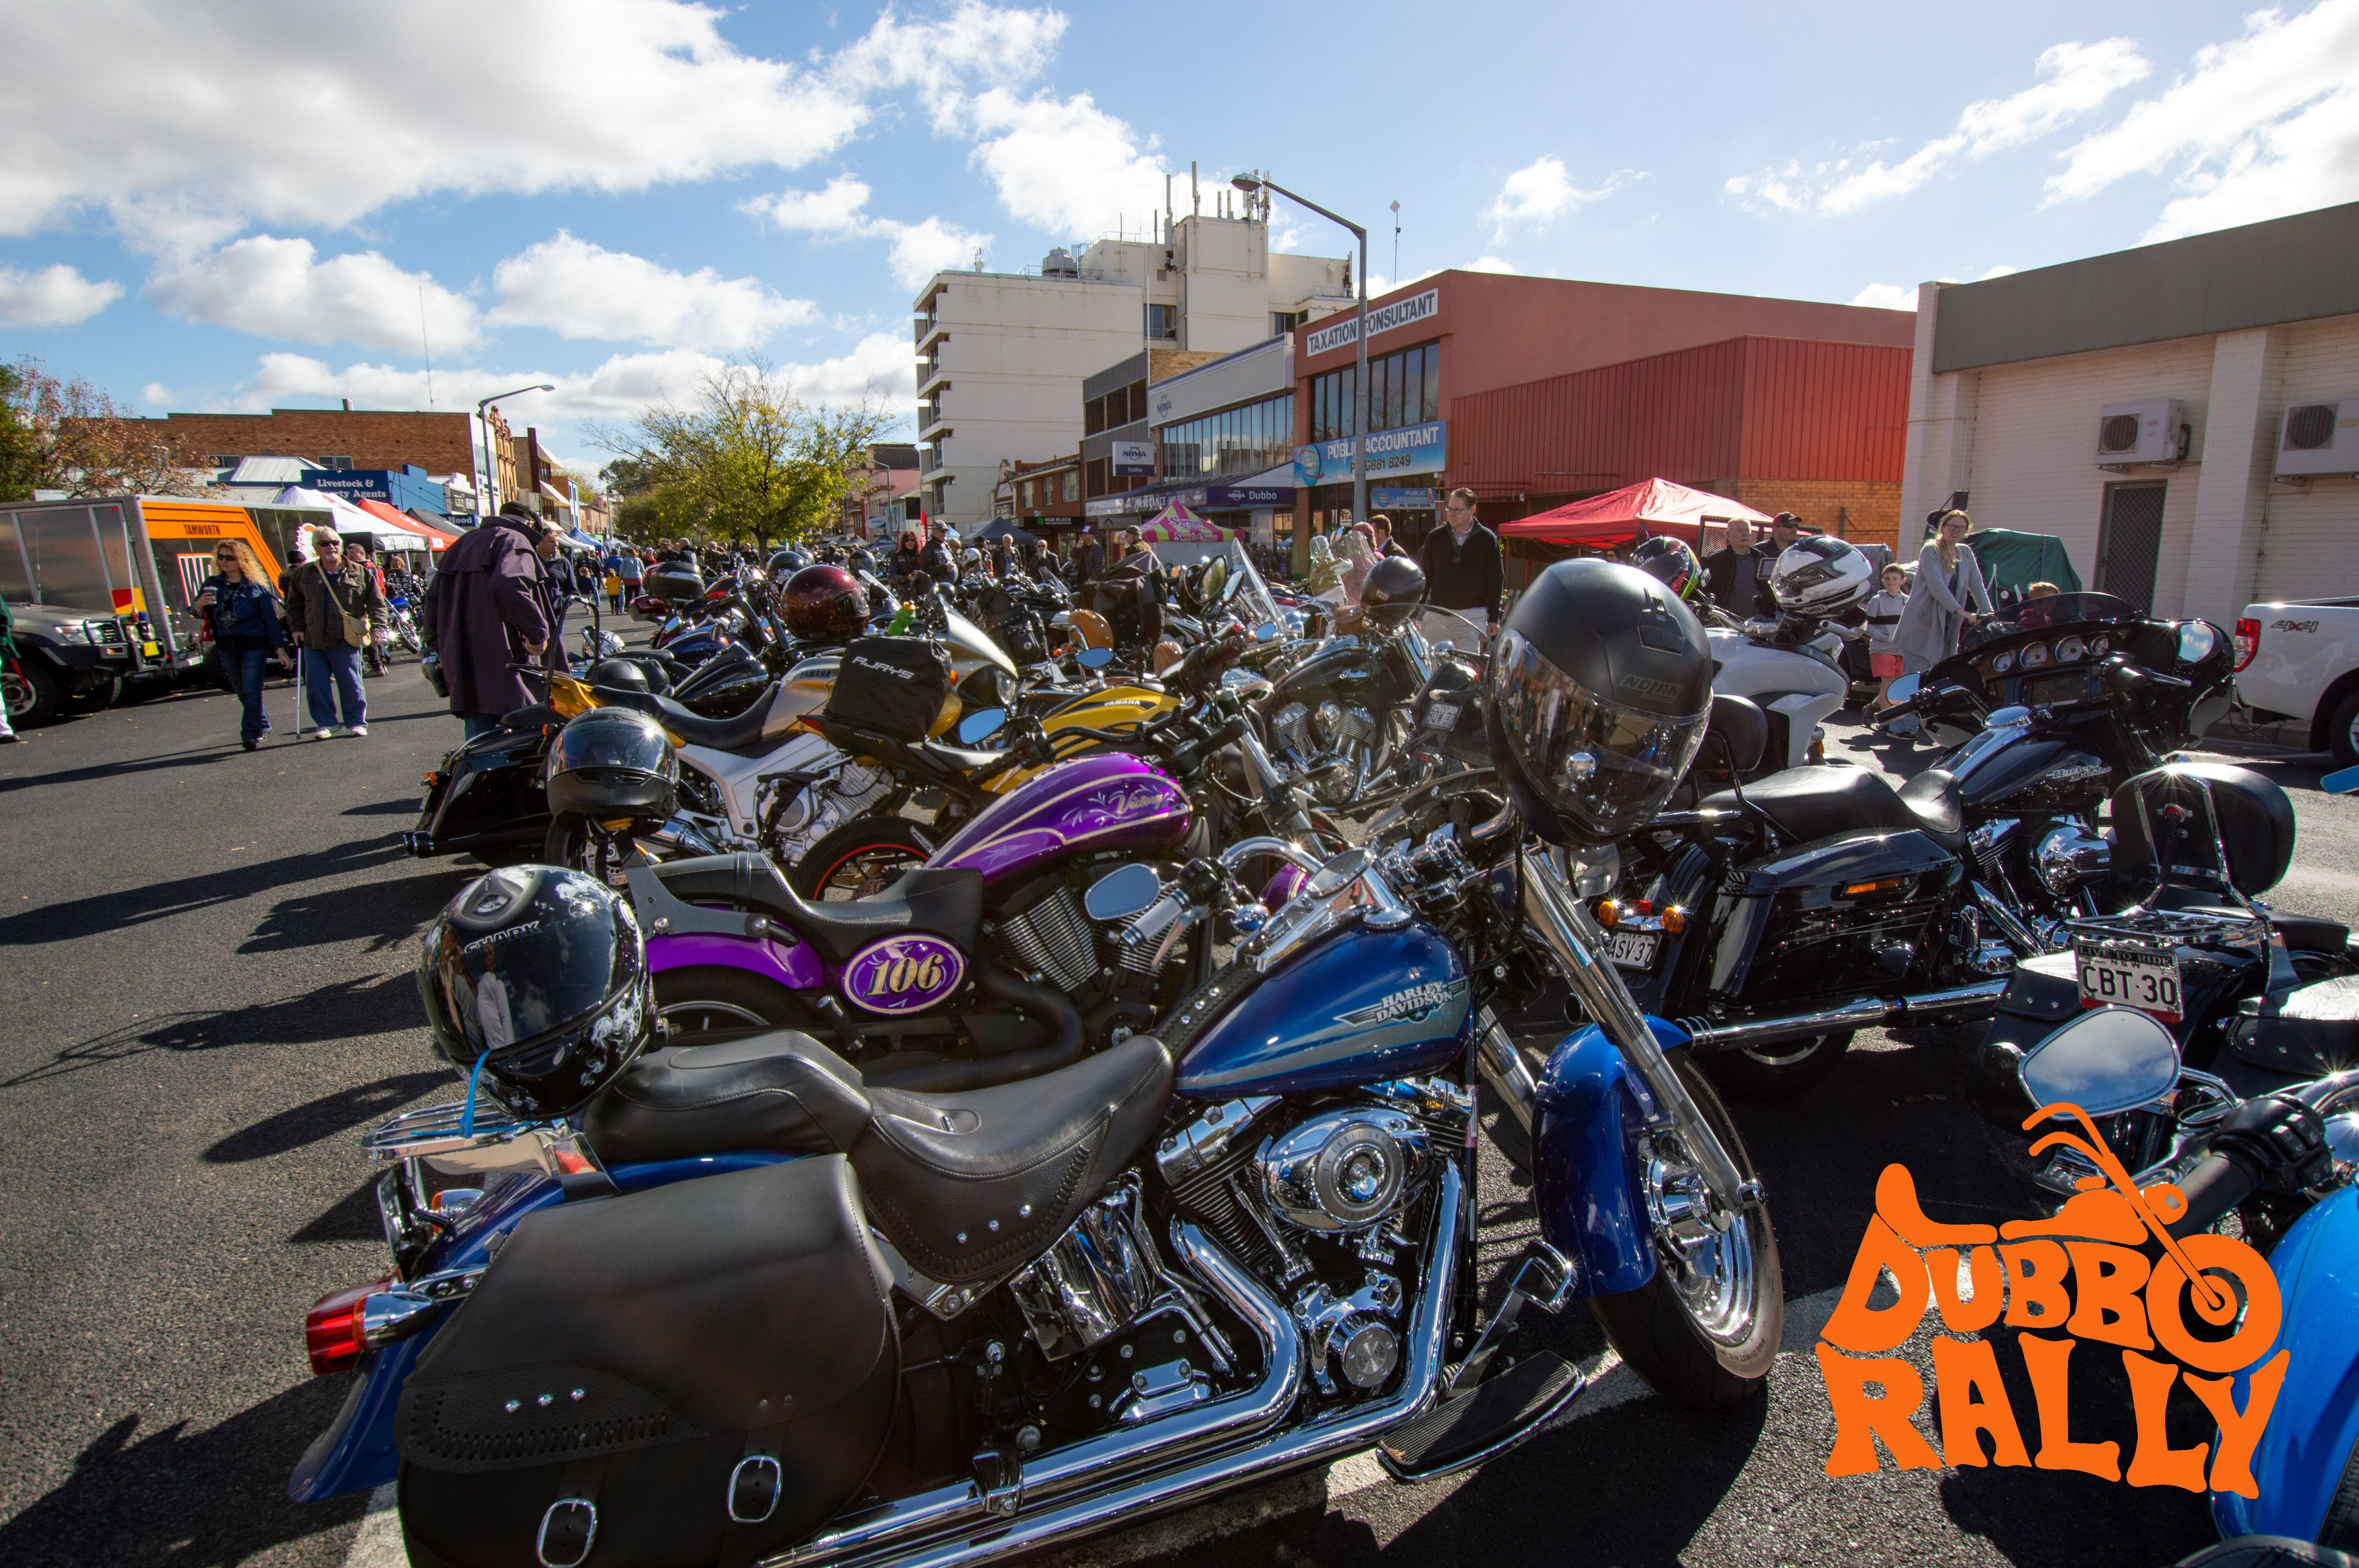 Dubbo Motor Bike Rally - Accommodation Search